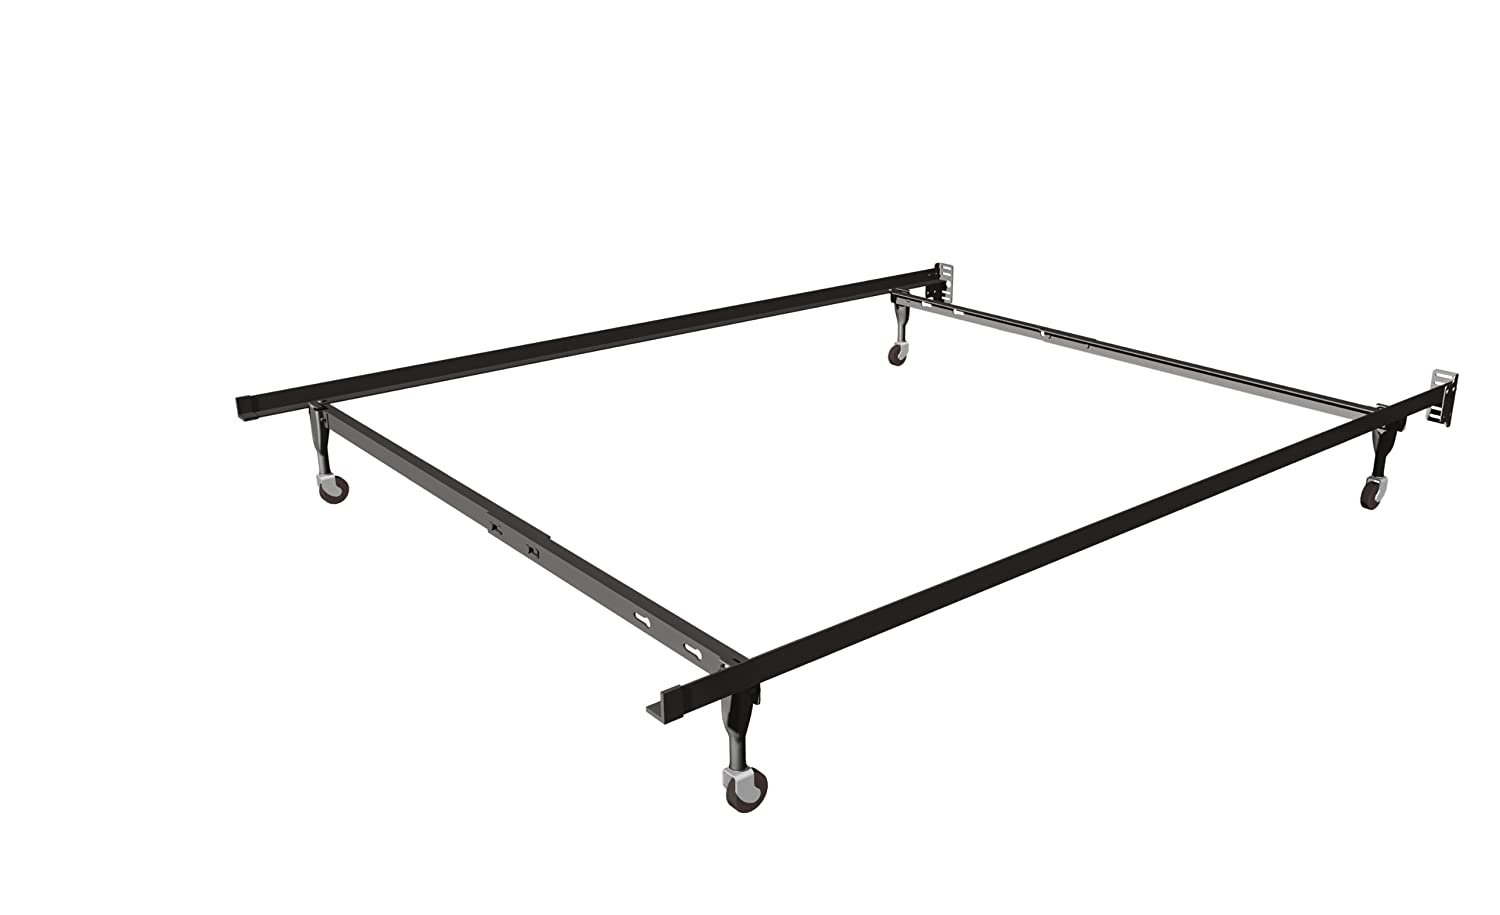 Amazon.com: Insta Lock Queen Bed Frame With Rug Rollers And Cross Support:  Kitchen U0026 Dining